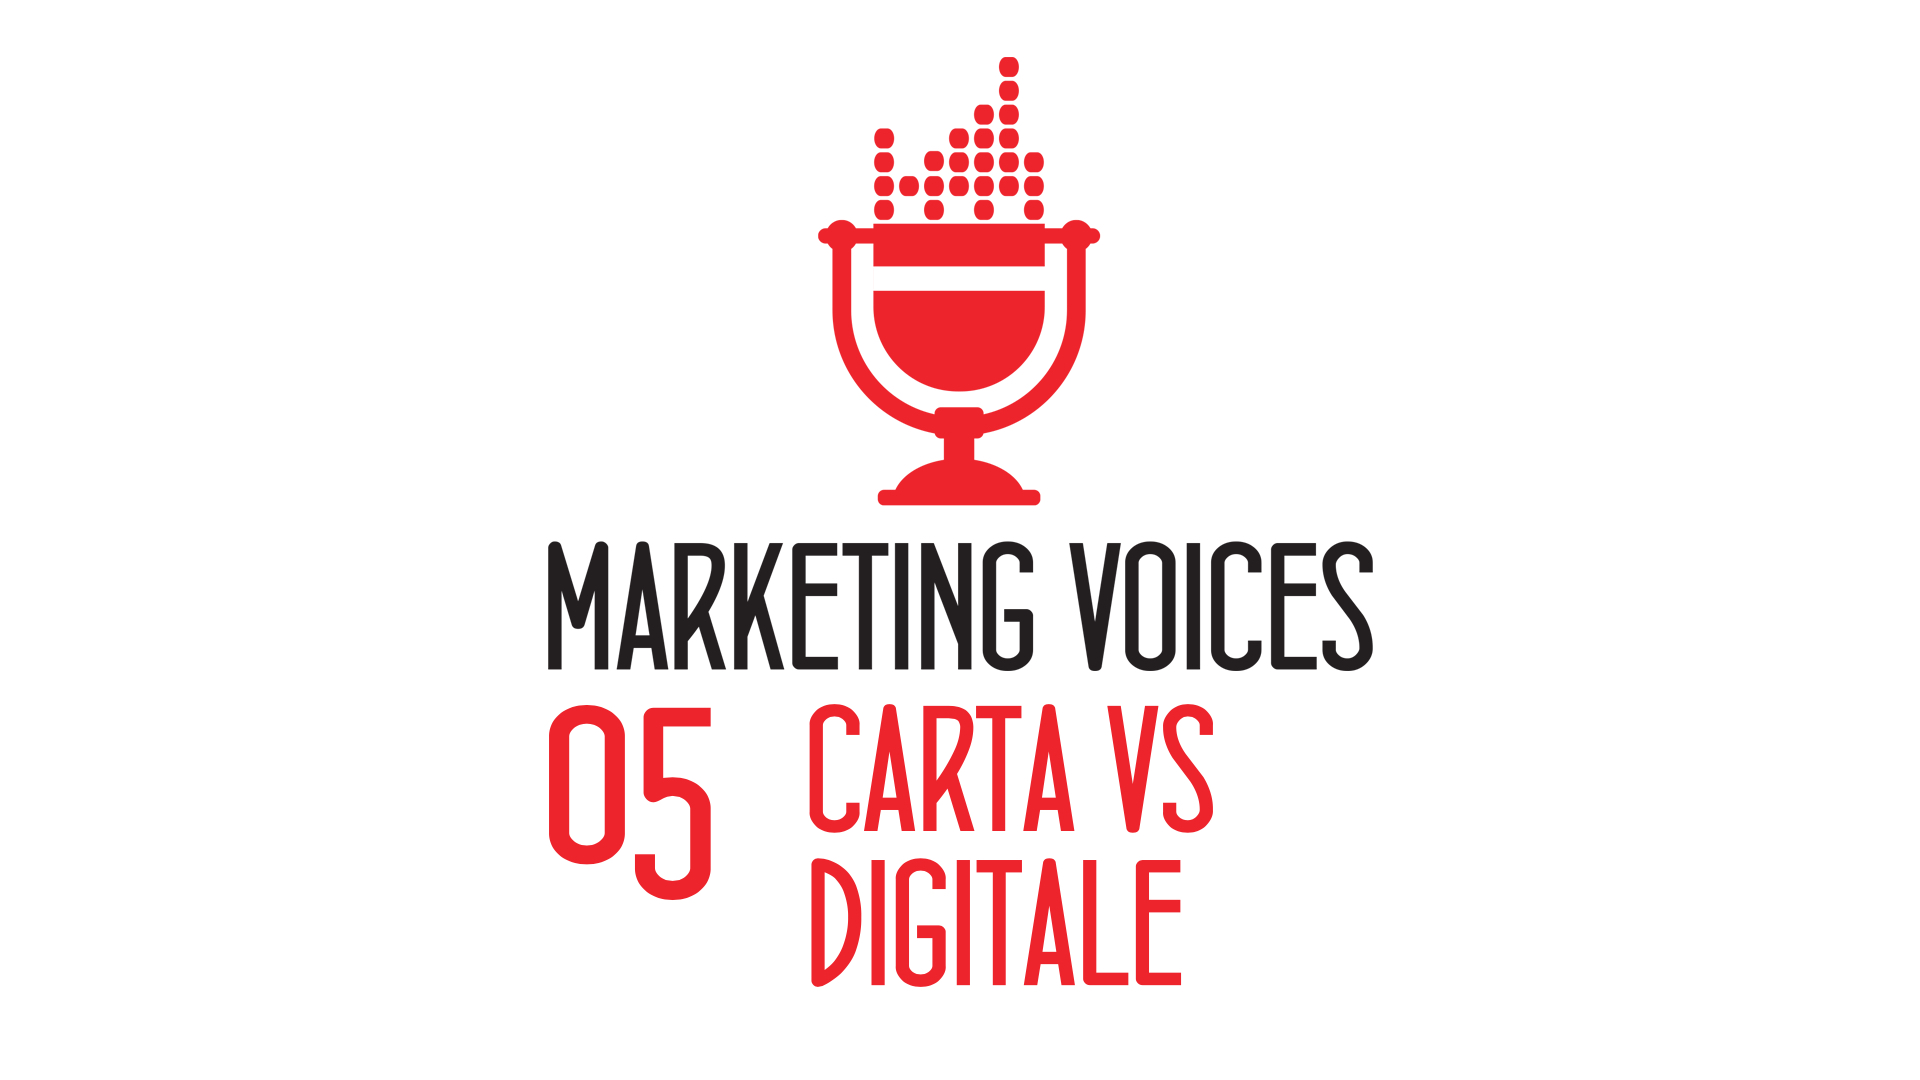 carta vs digitale marketing voices christian marulli ciemme srl